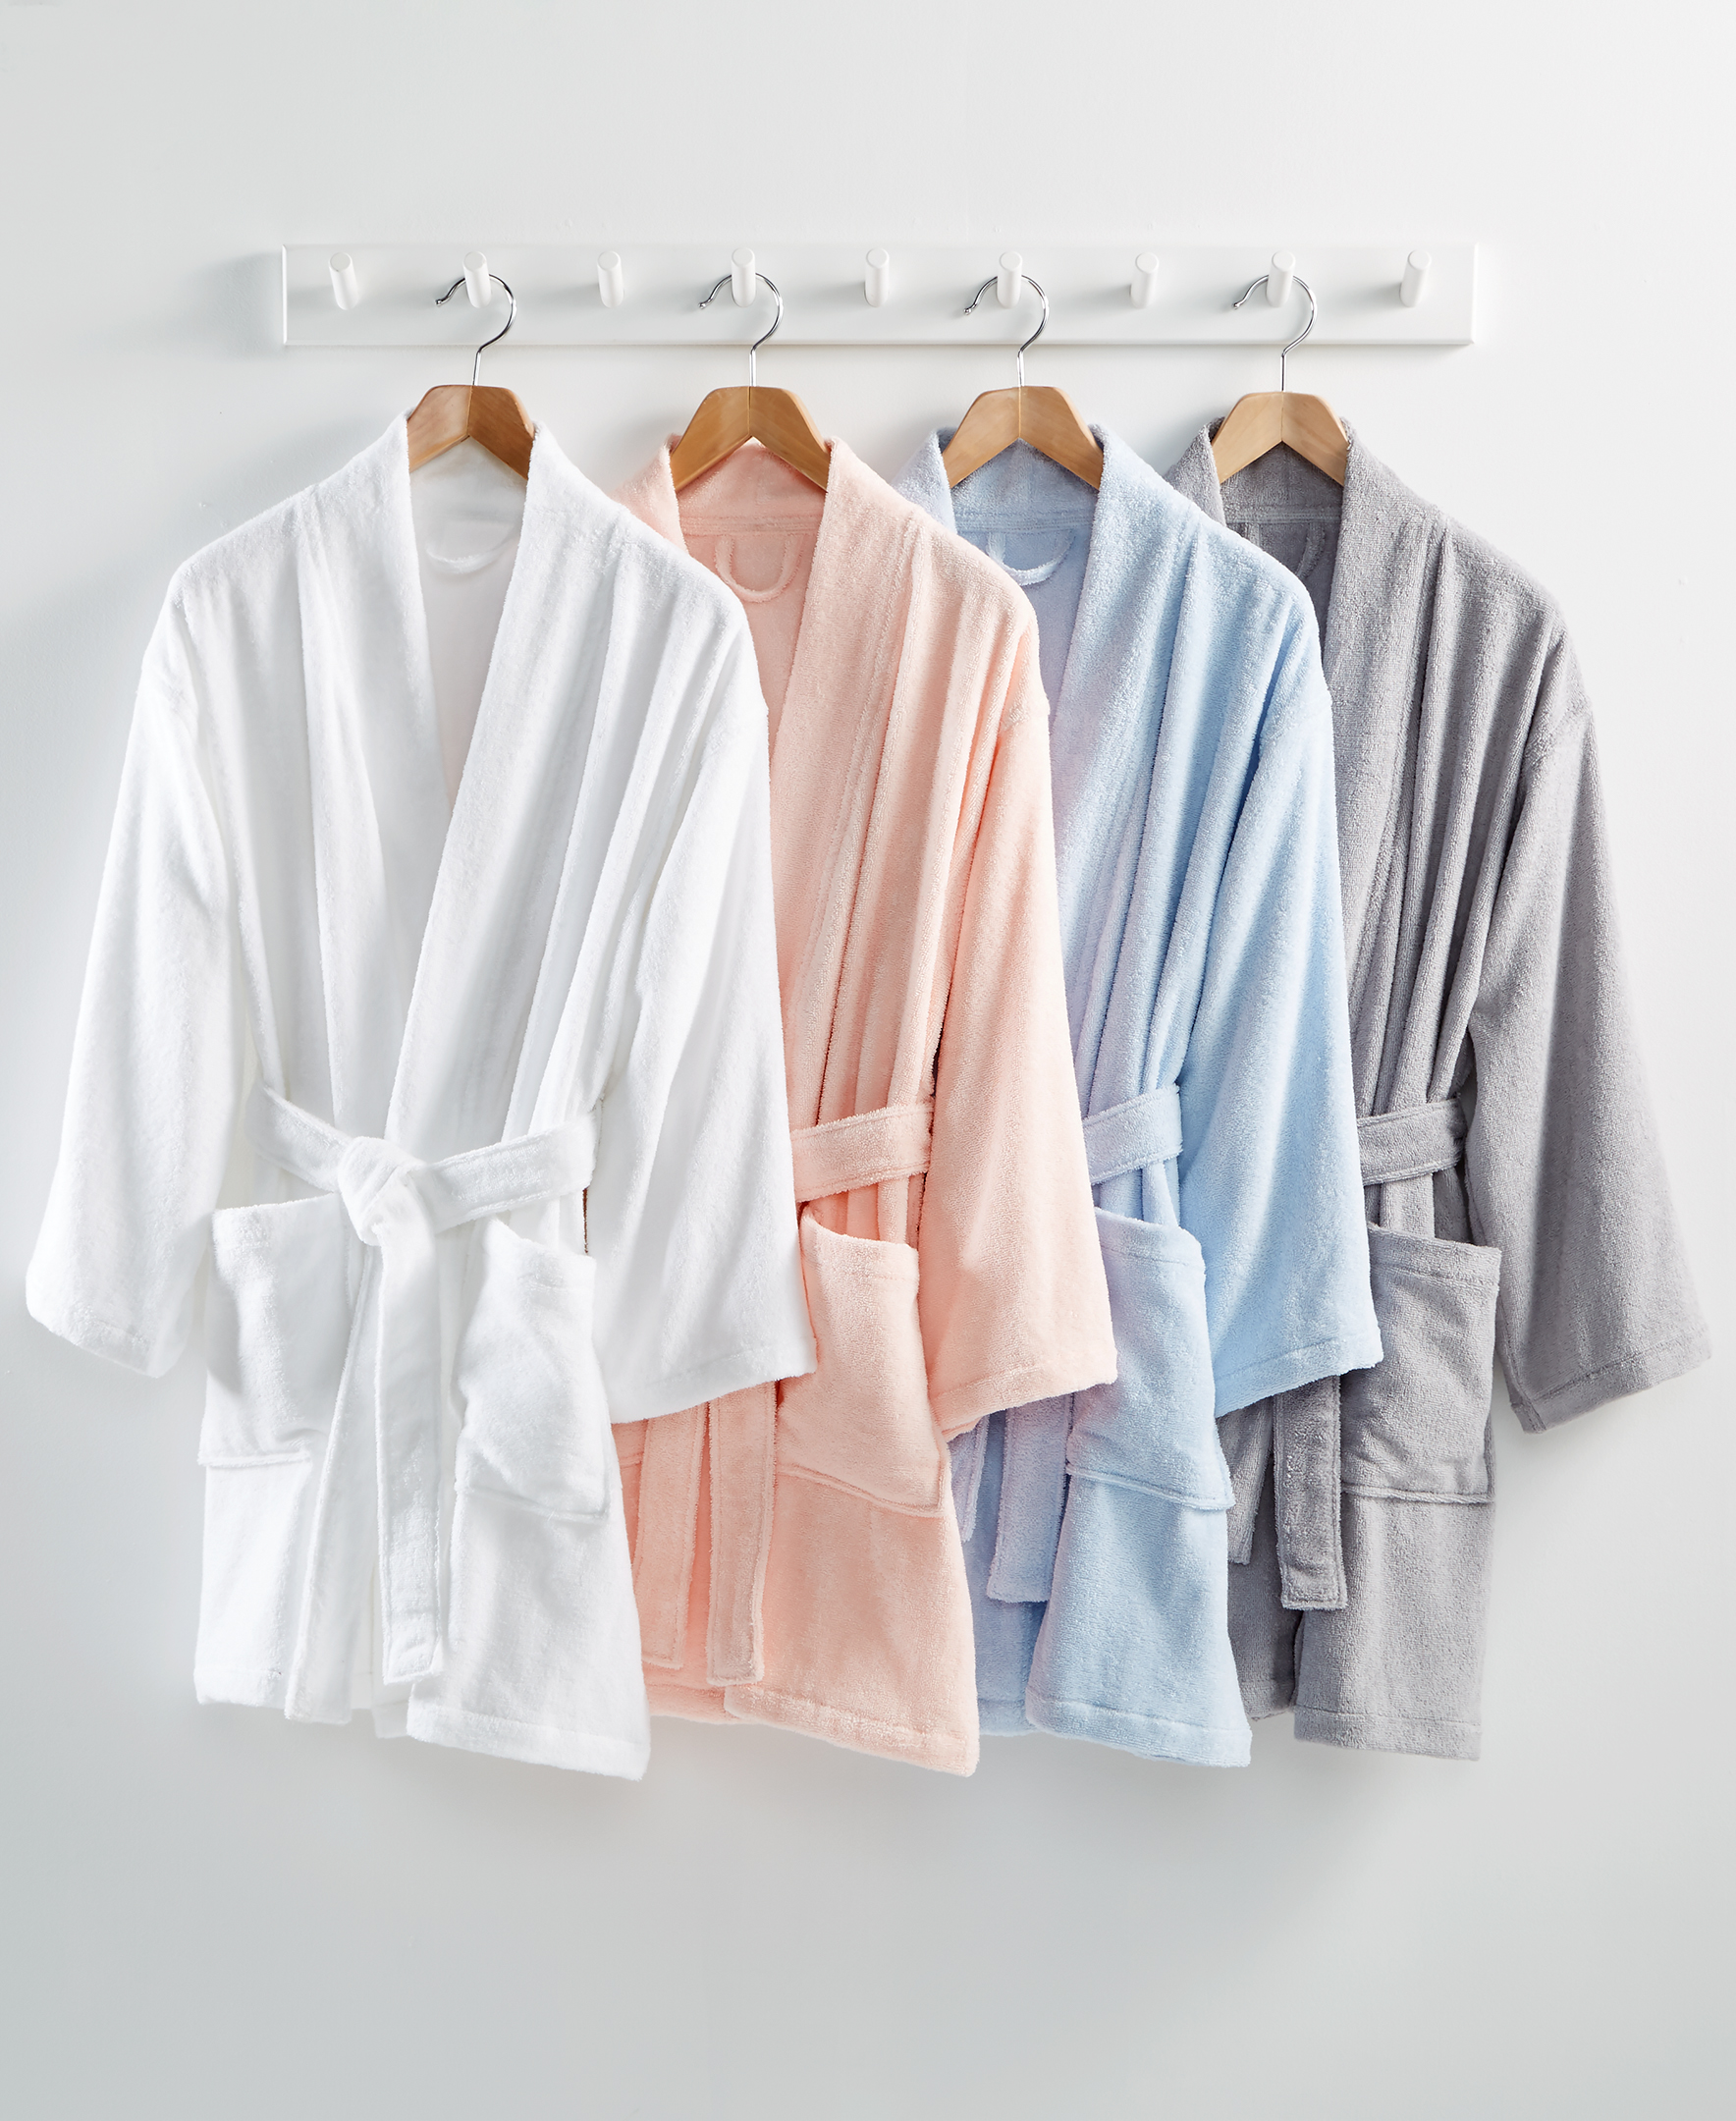 Cotton Terry Bathrobes on hangers